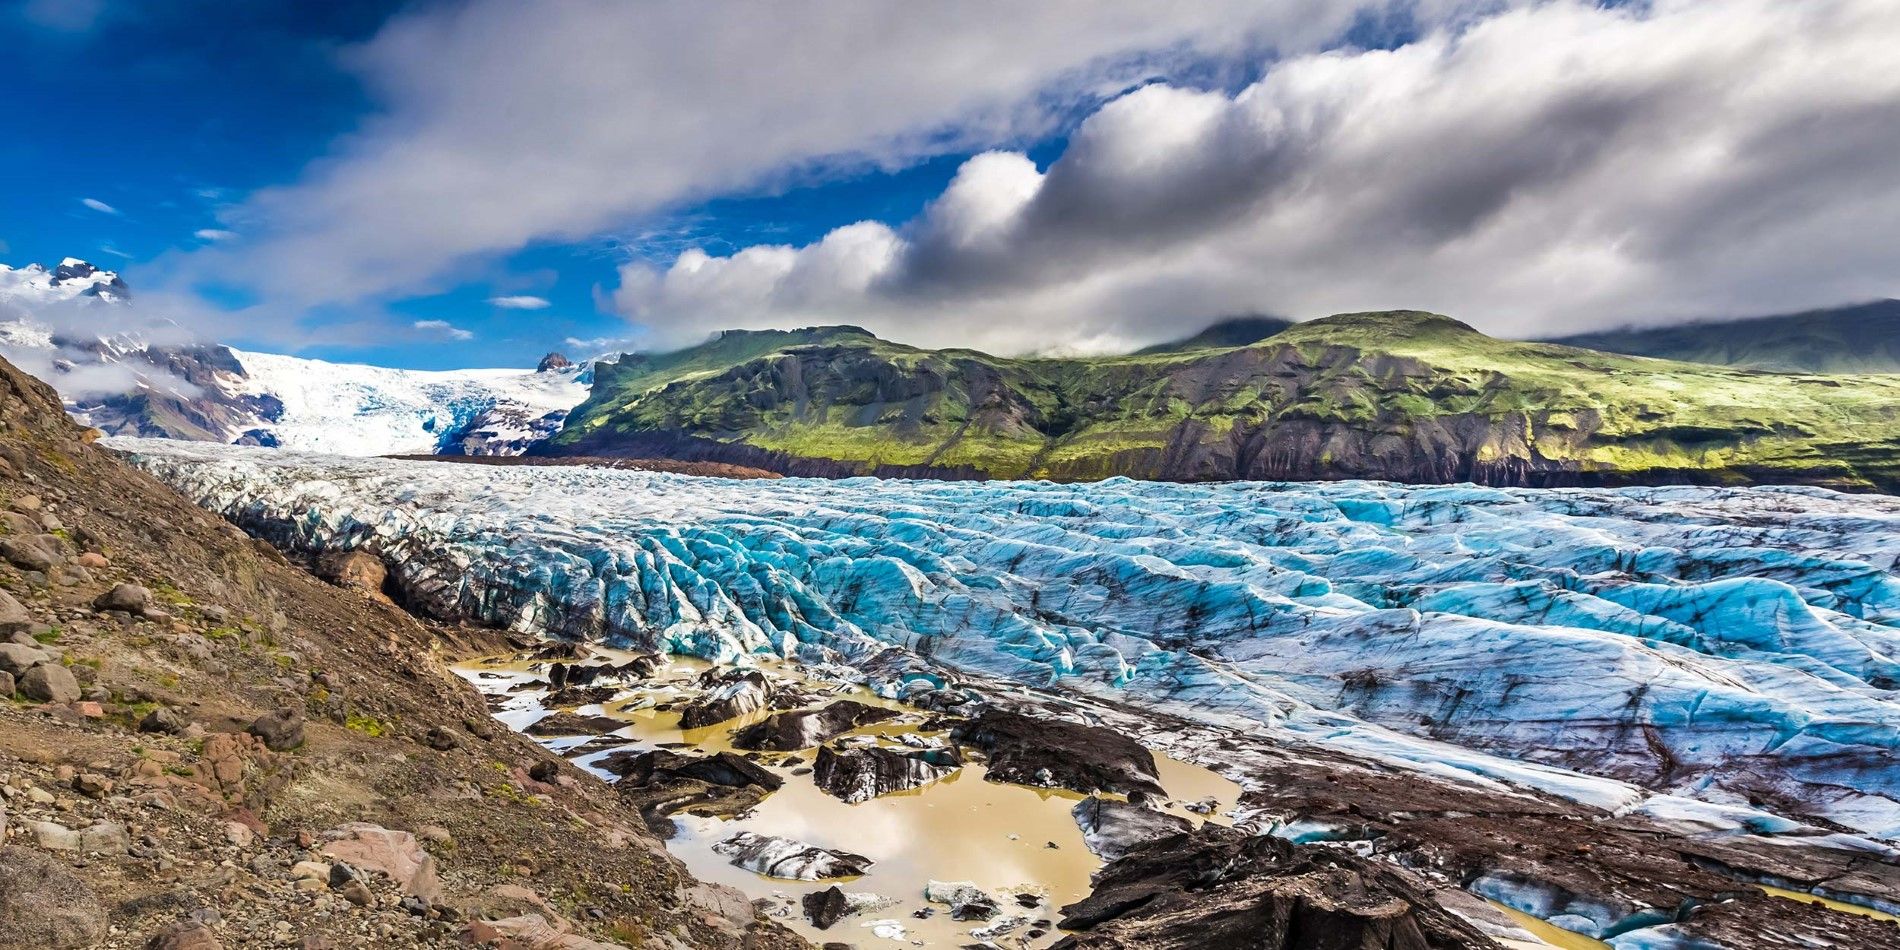 The enormous Vatnajokull glacier and the Icelandic mountains that surround it